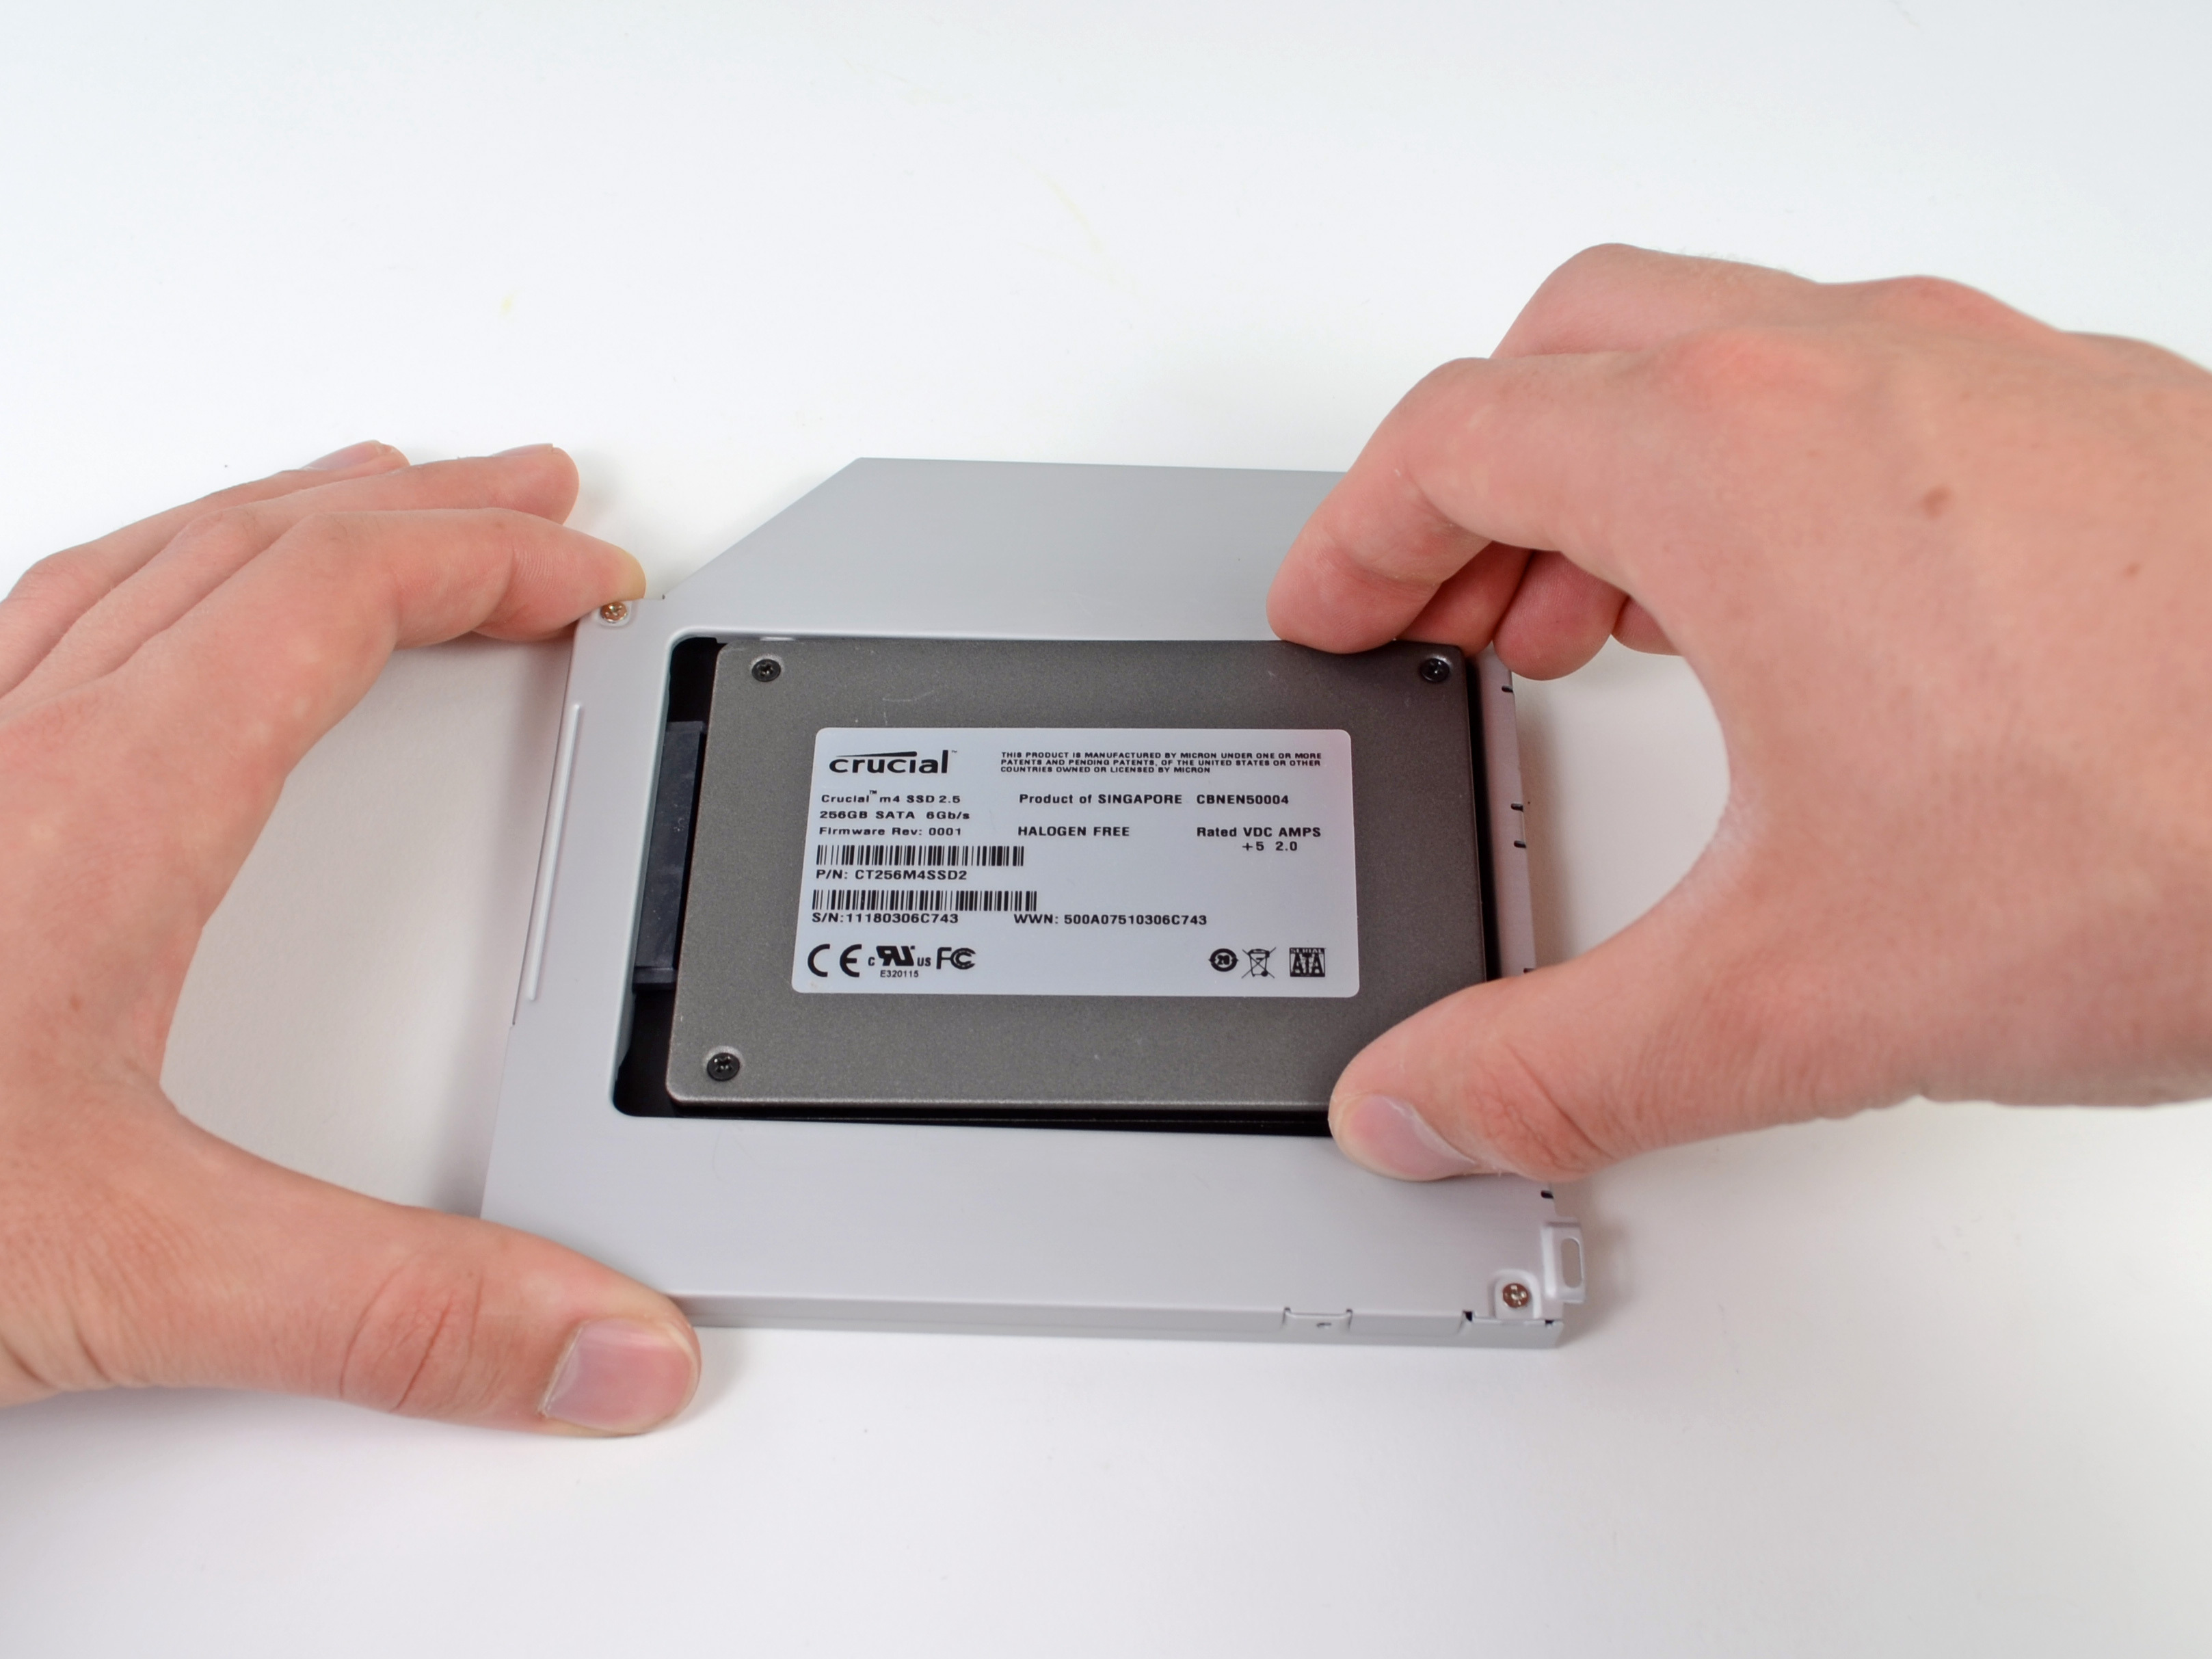 macbook pro hard drive replacement guide